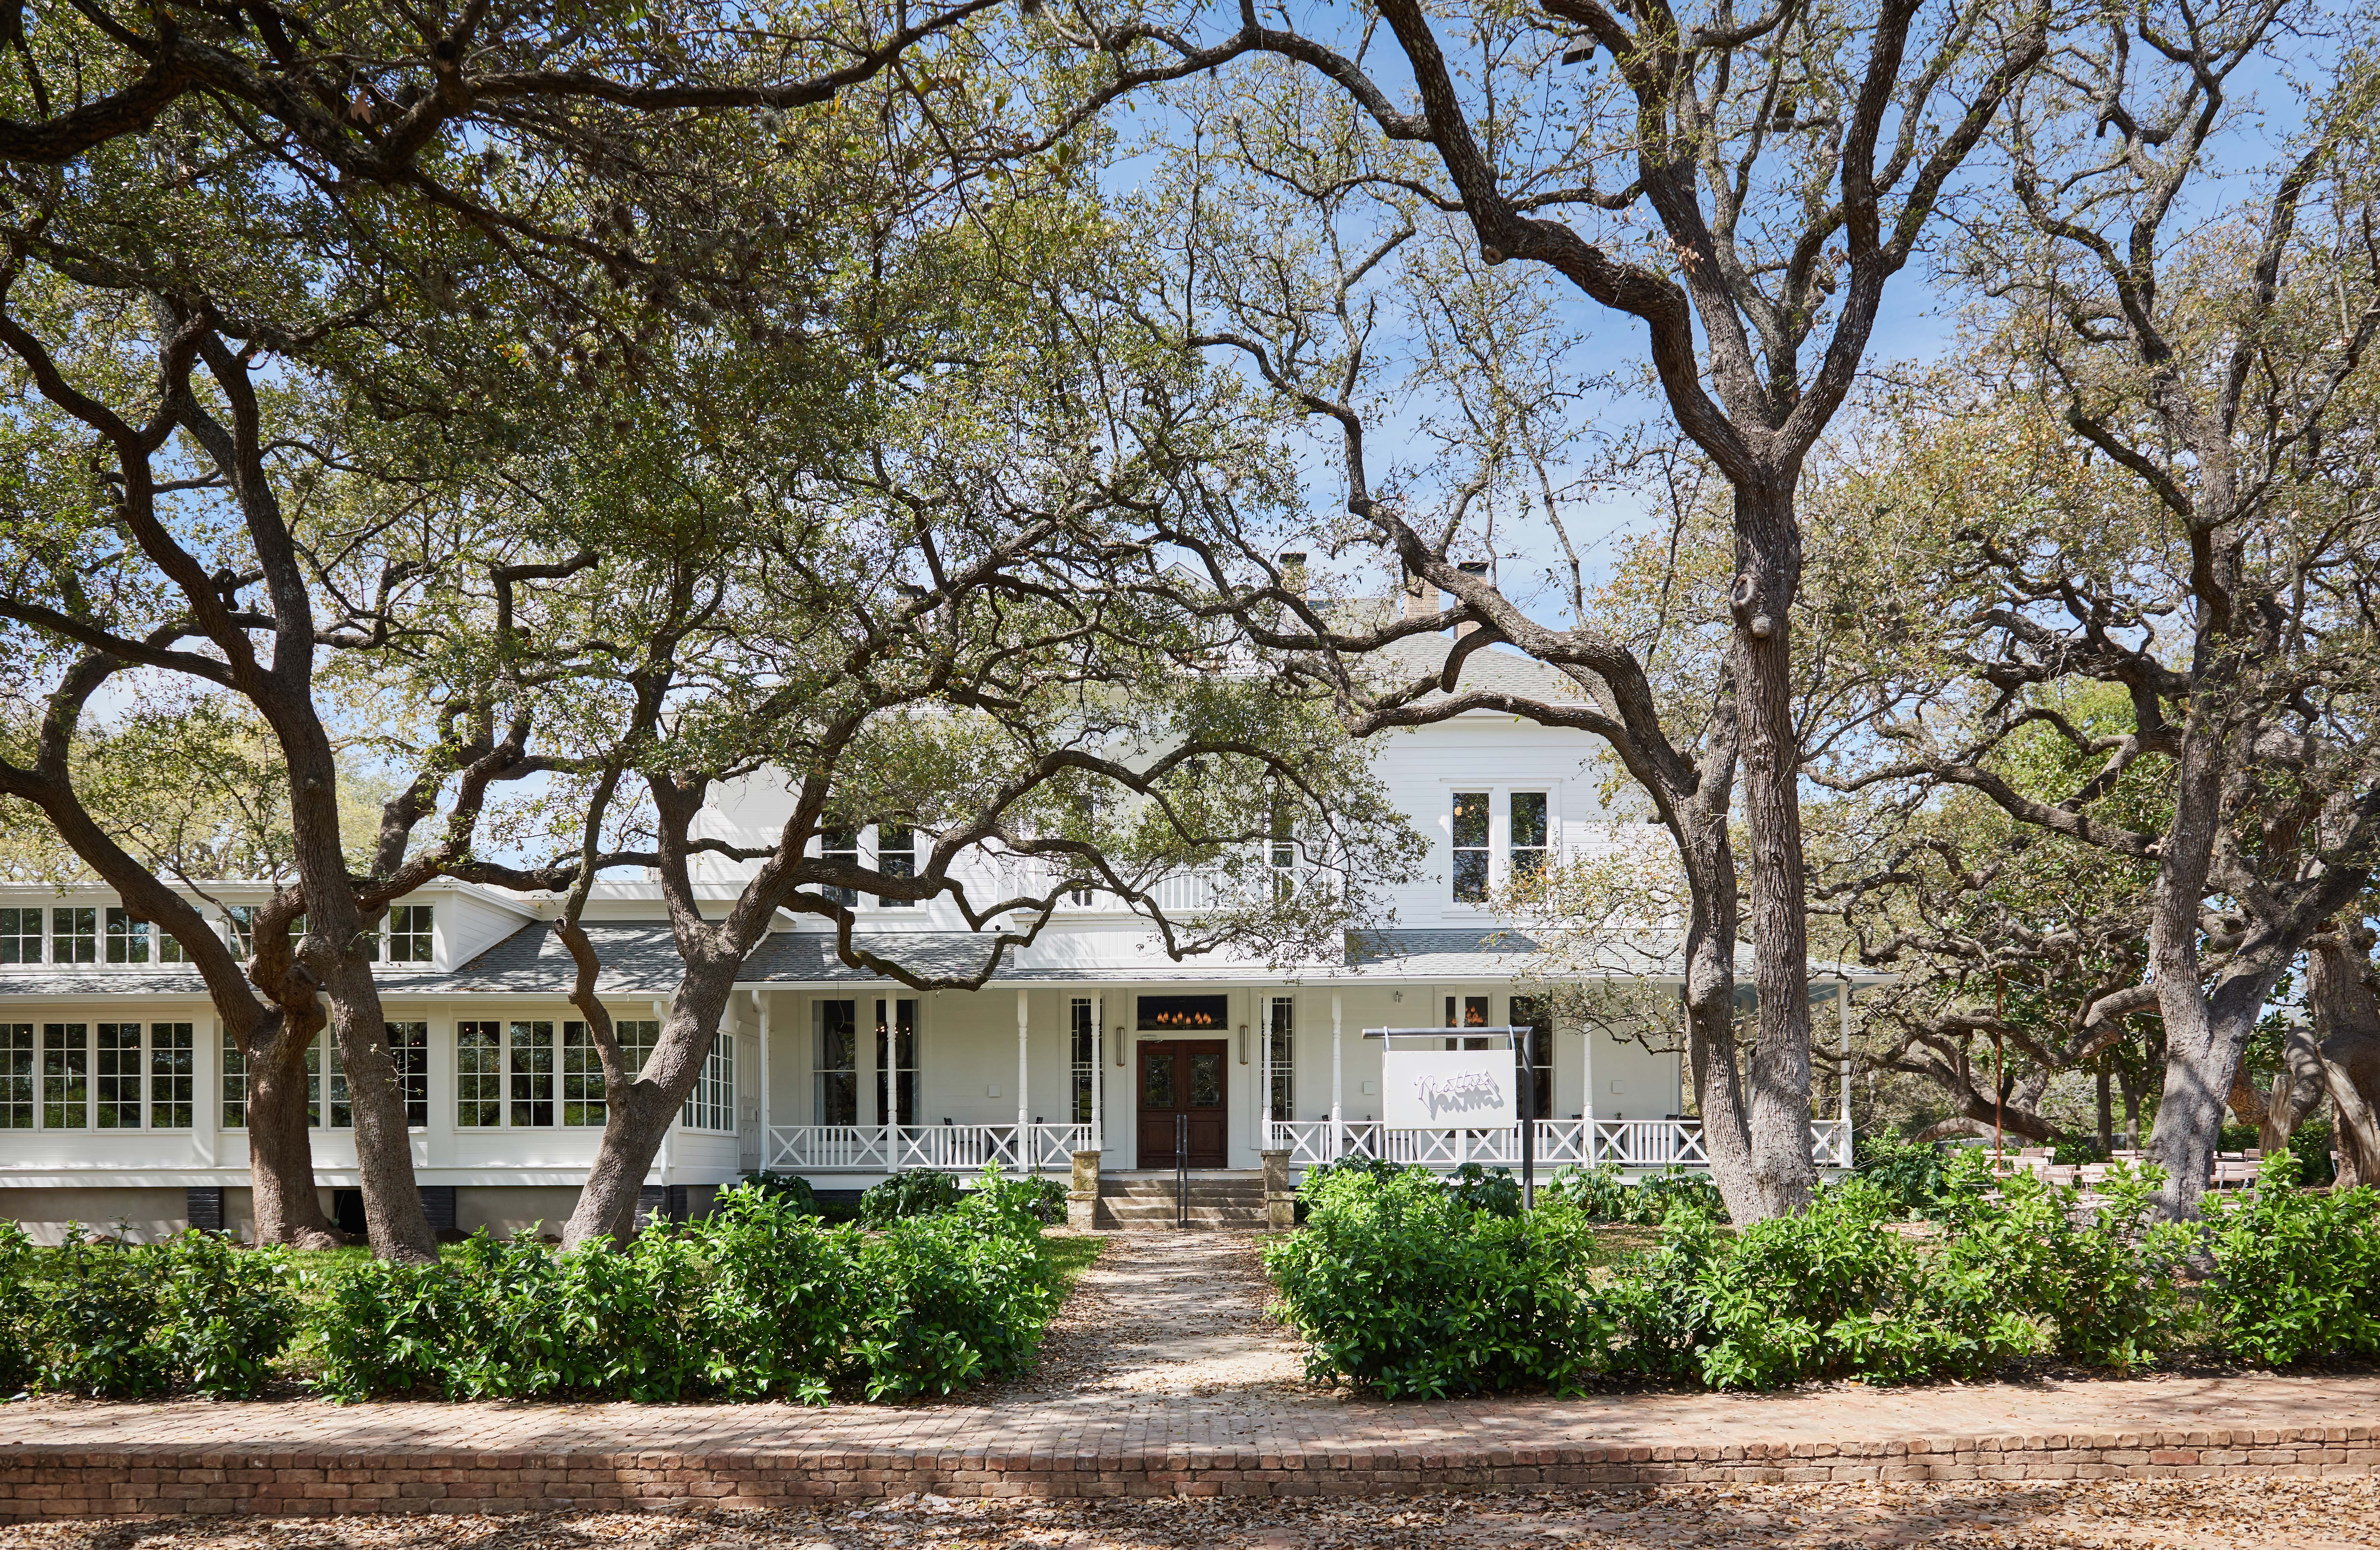 Photo of white Victorian house/restaurant with large oaks